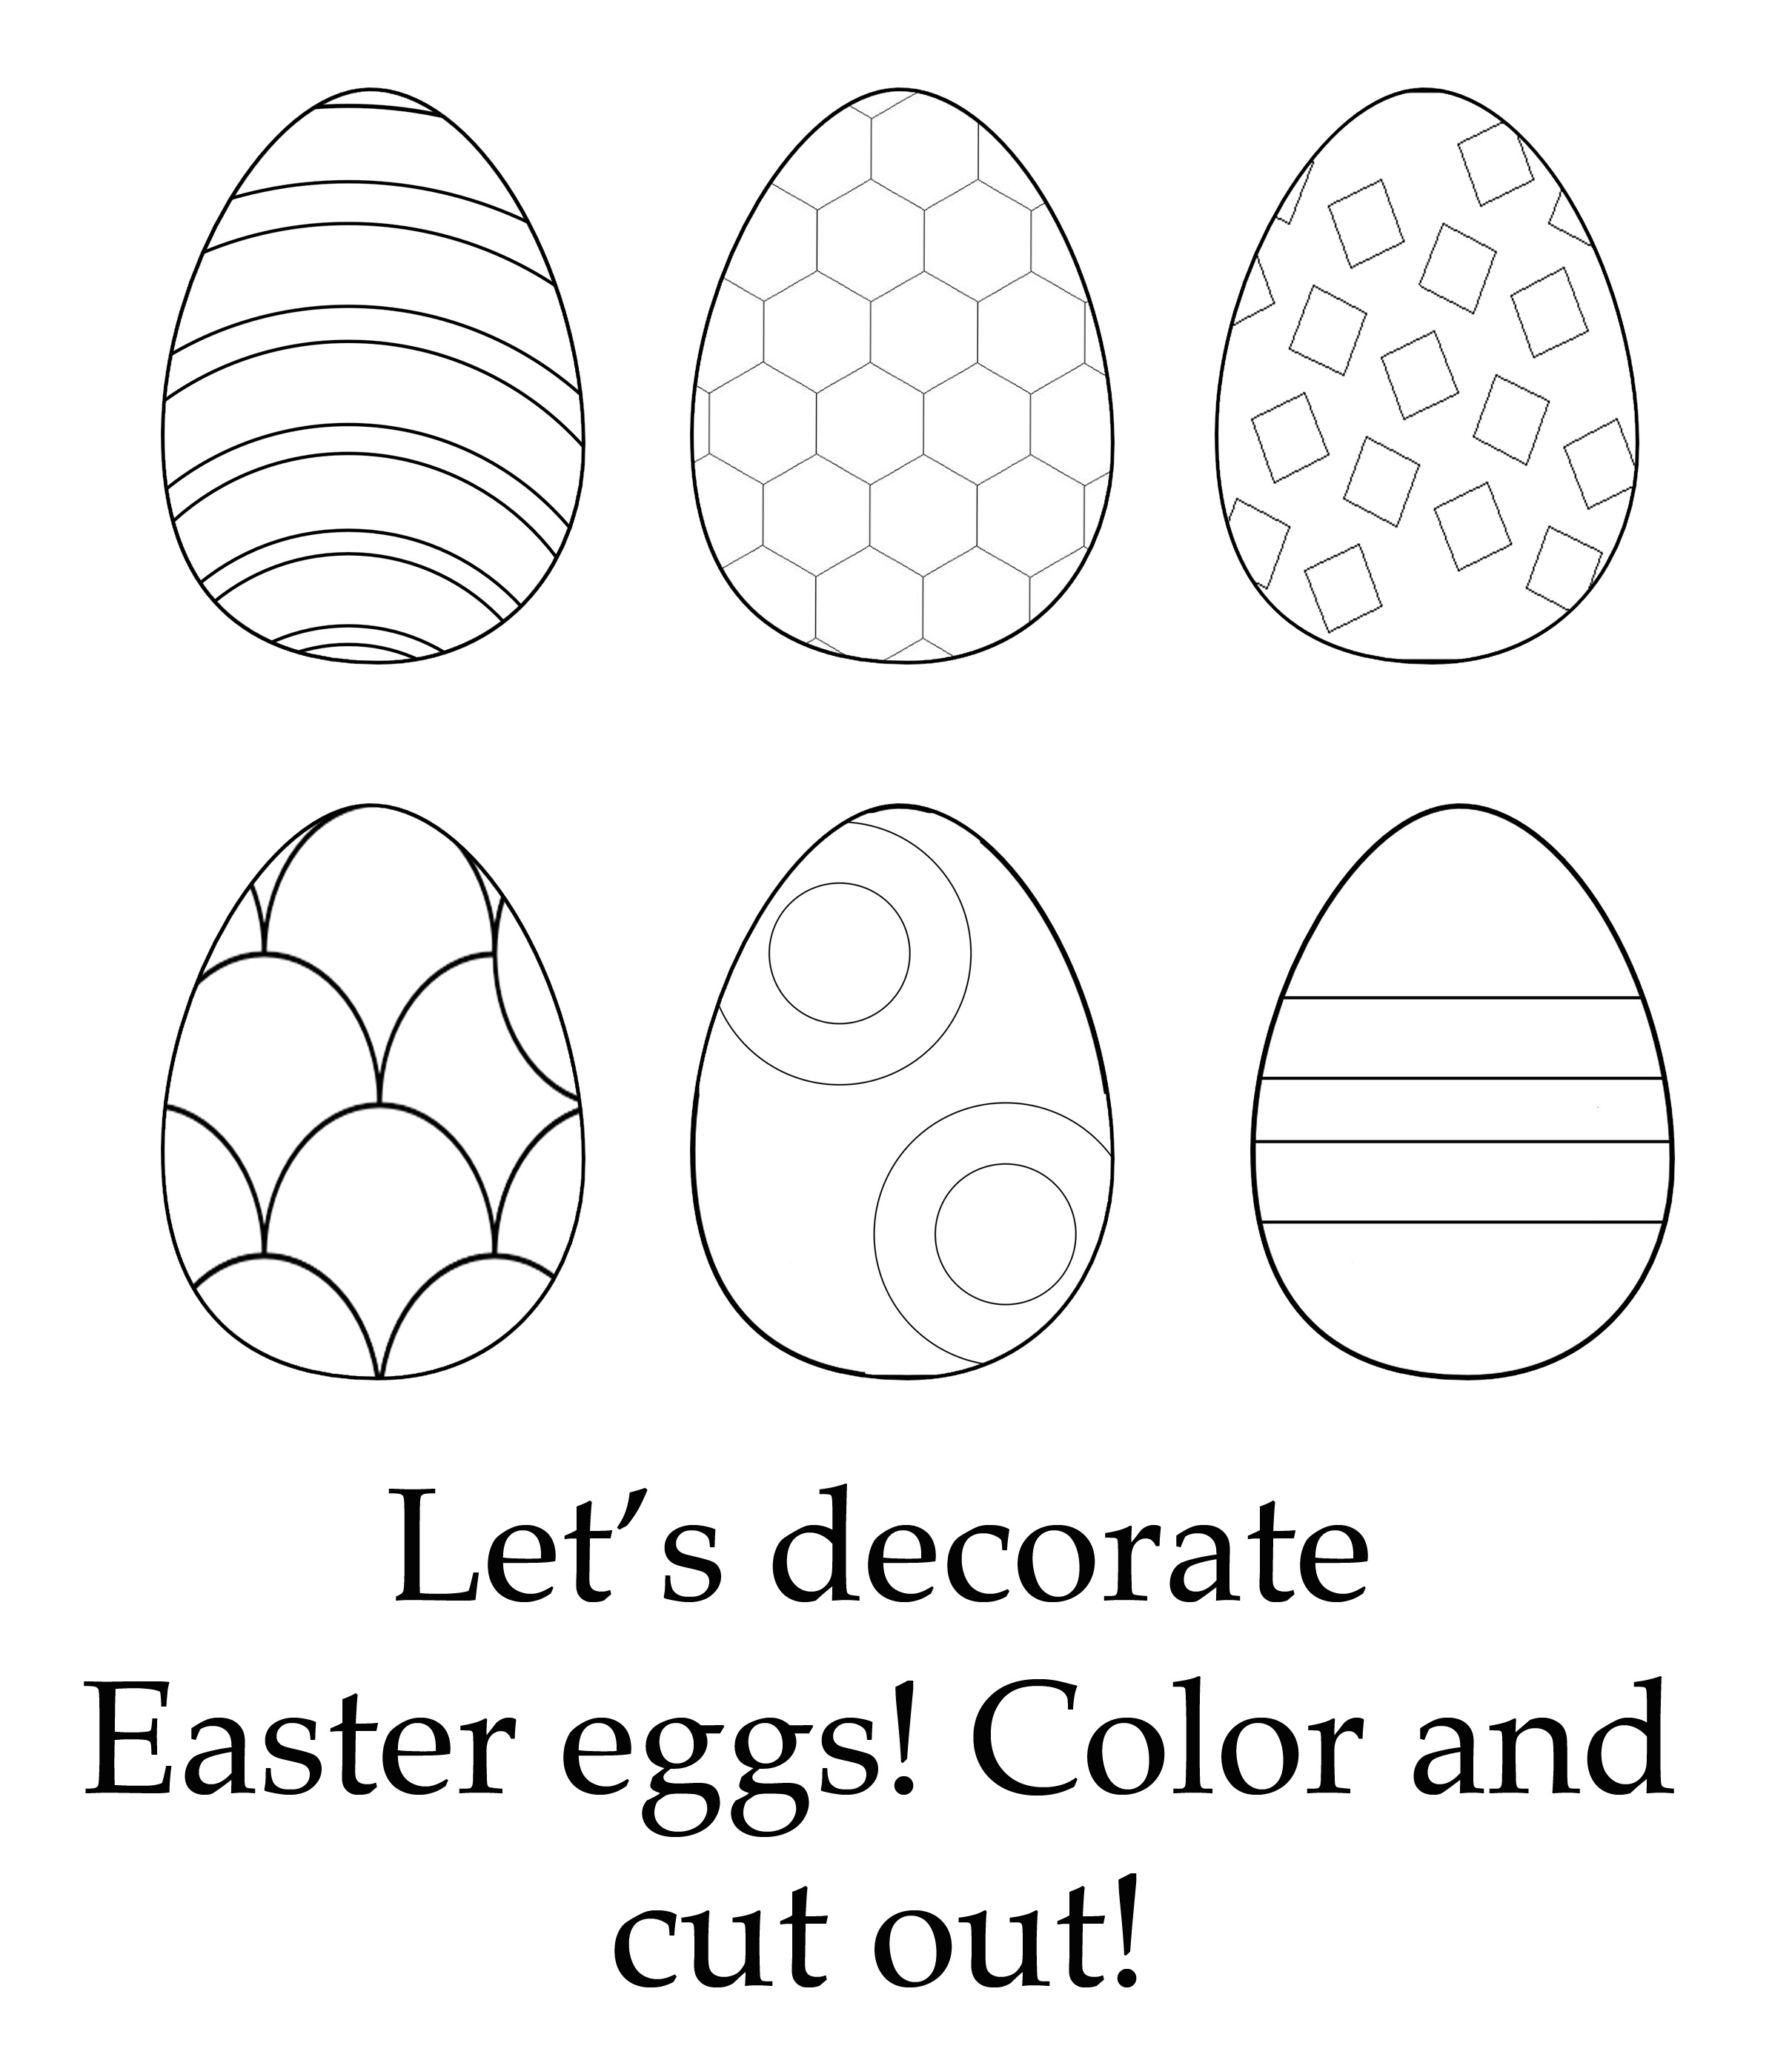 Worksheets for kids lucalashes easter color 2 jpg robcynllc Image collections